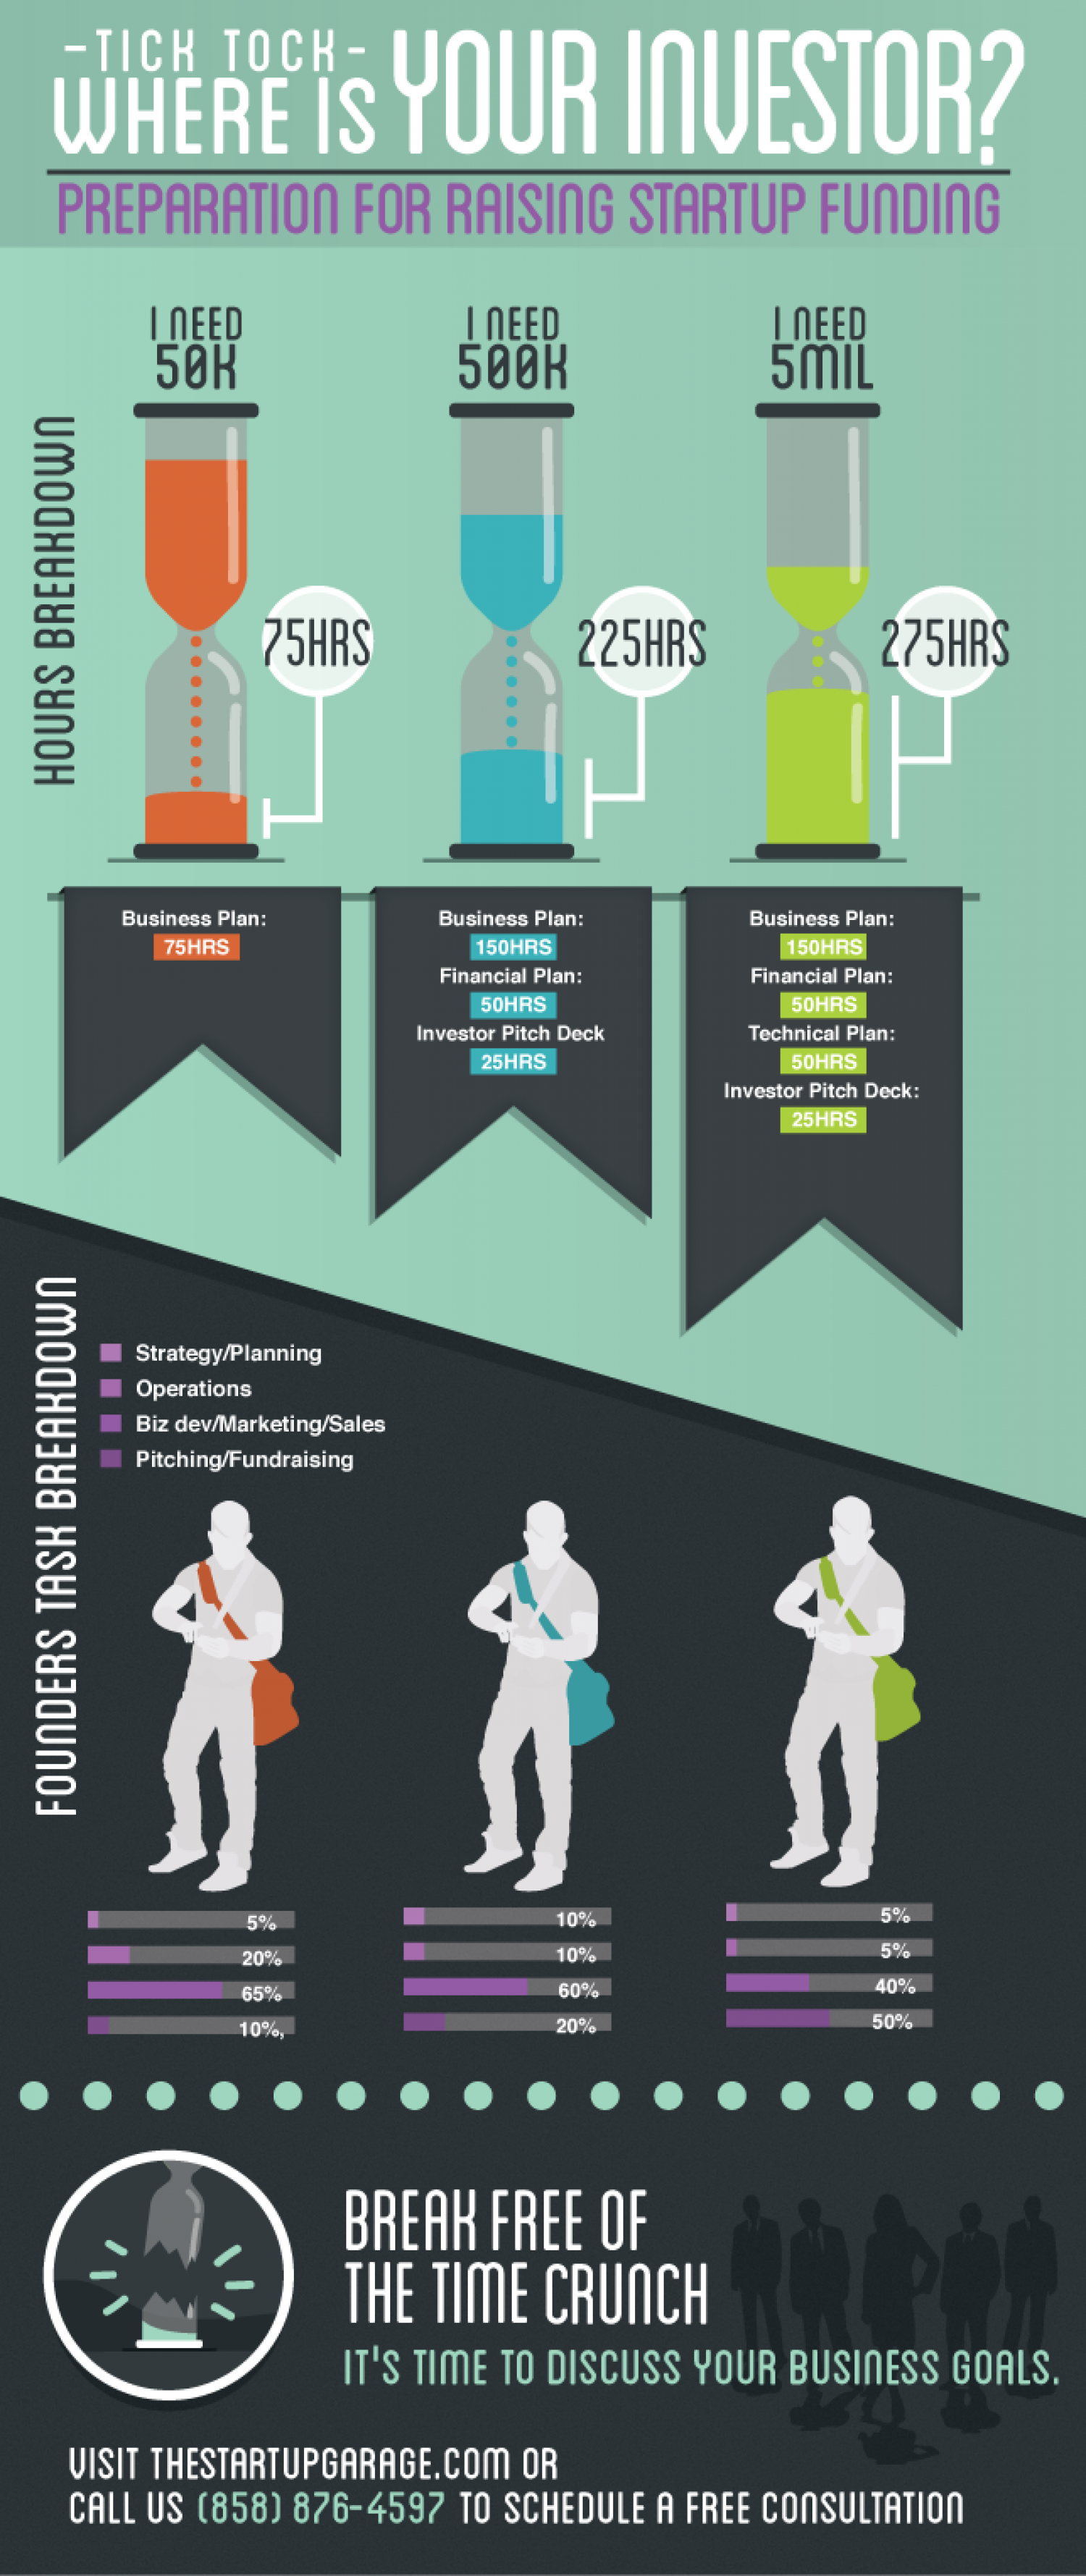 Where Is Your Investor? Infographic